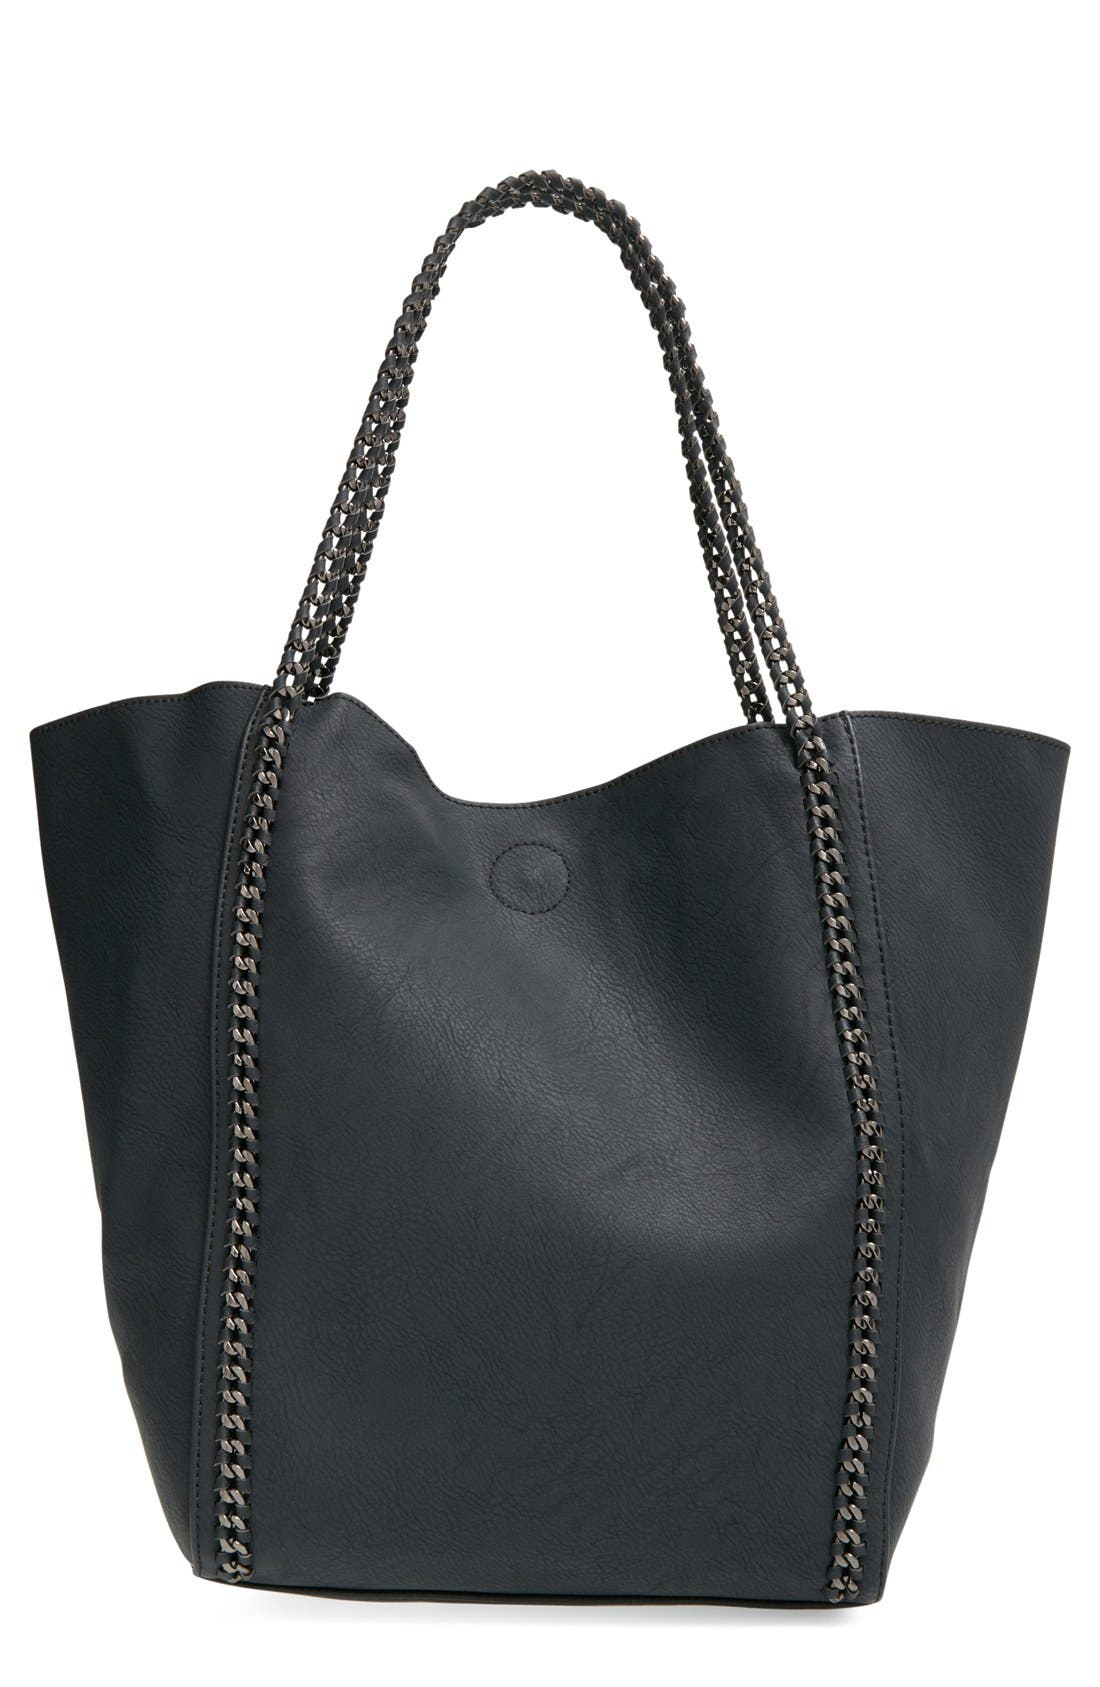 PHASE 3, Chain Faux Leather Tote, Main thumbnail 1, color, 001